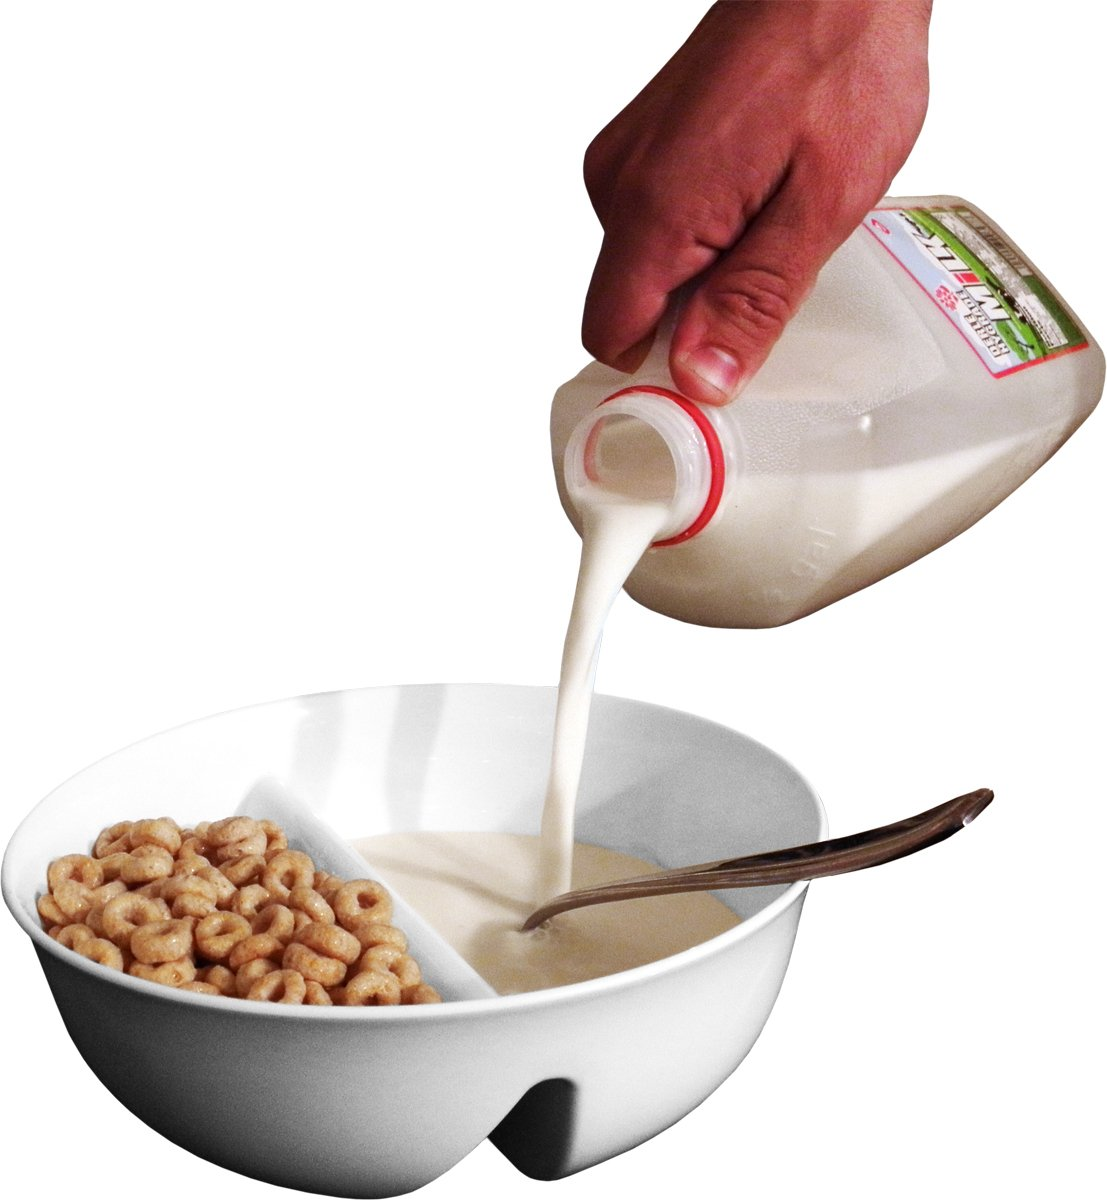 Just Crunch Anti-Soggy Cereal Bowl - Keeps Cereal Fresh & Crunchy   BPA Free   Microwave Safe   Ice Cream & Topping, Yogurt & Berries, Fries & Ketchup and More – White